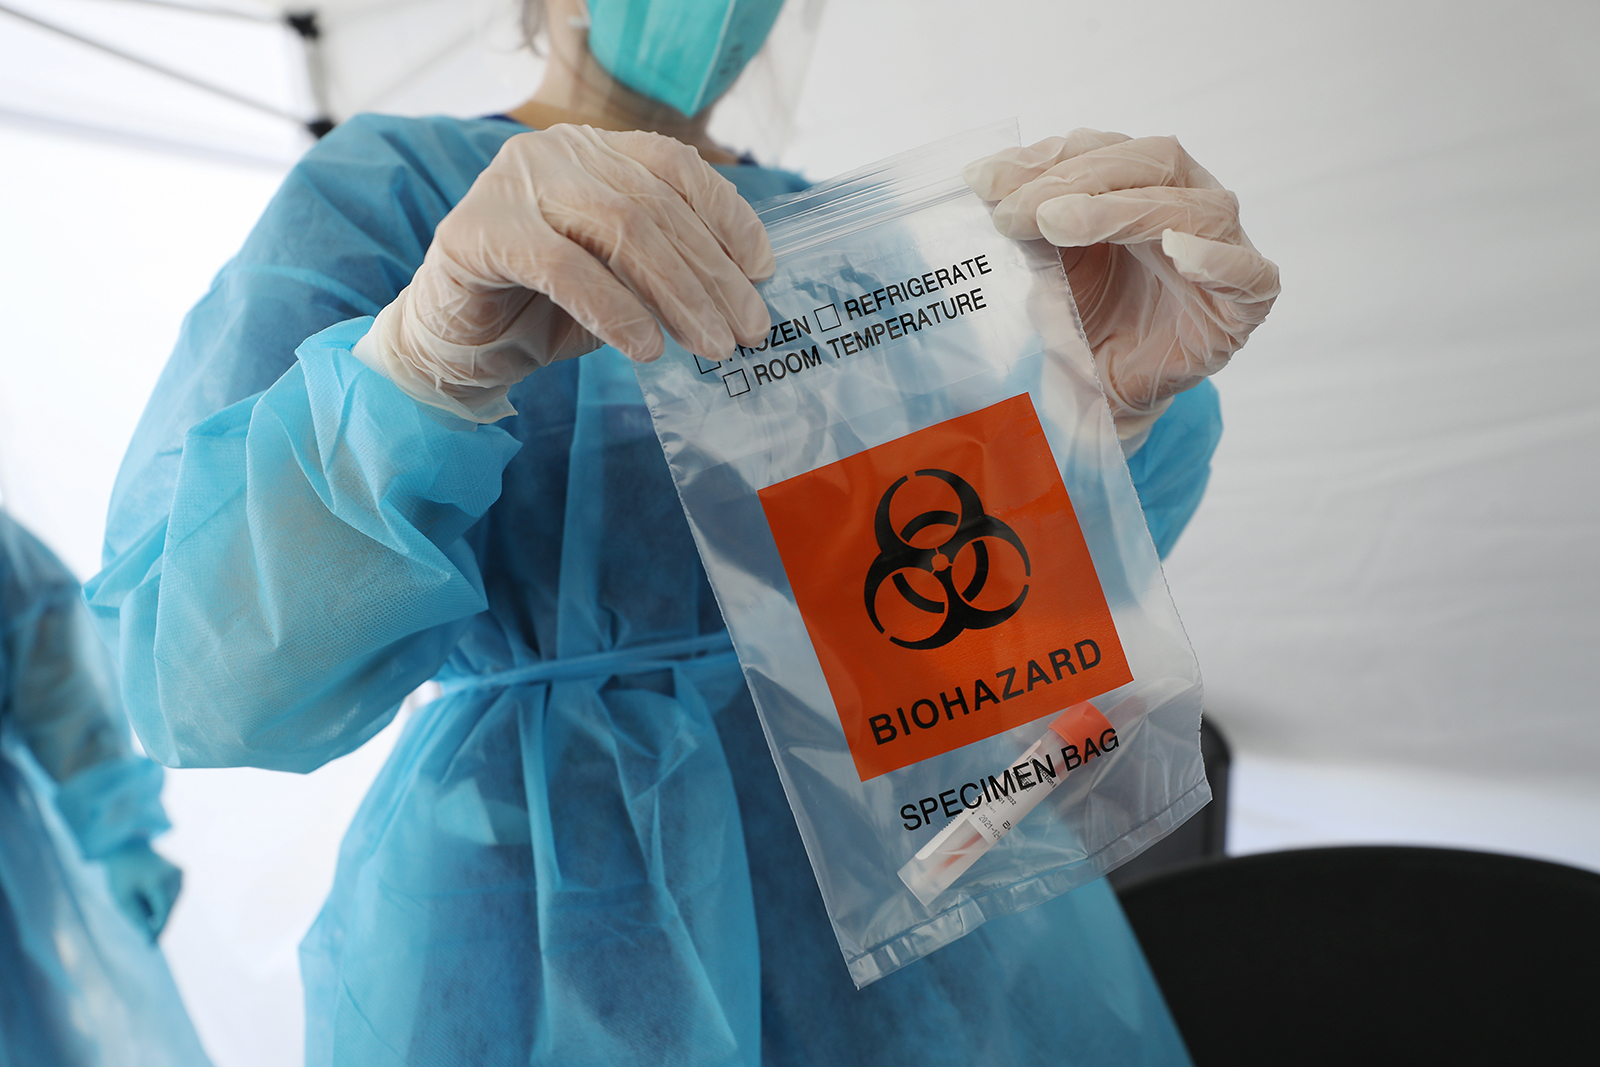 A nurse seals a specimen bag containing a Covid-19 test swab at a mobile clinic set up in South Los Angeles on July 15.